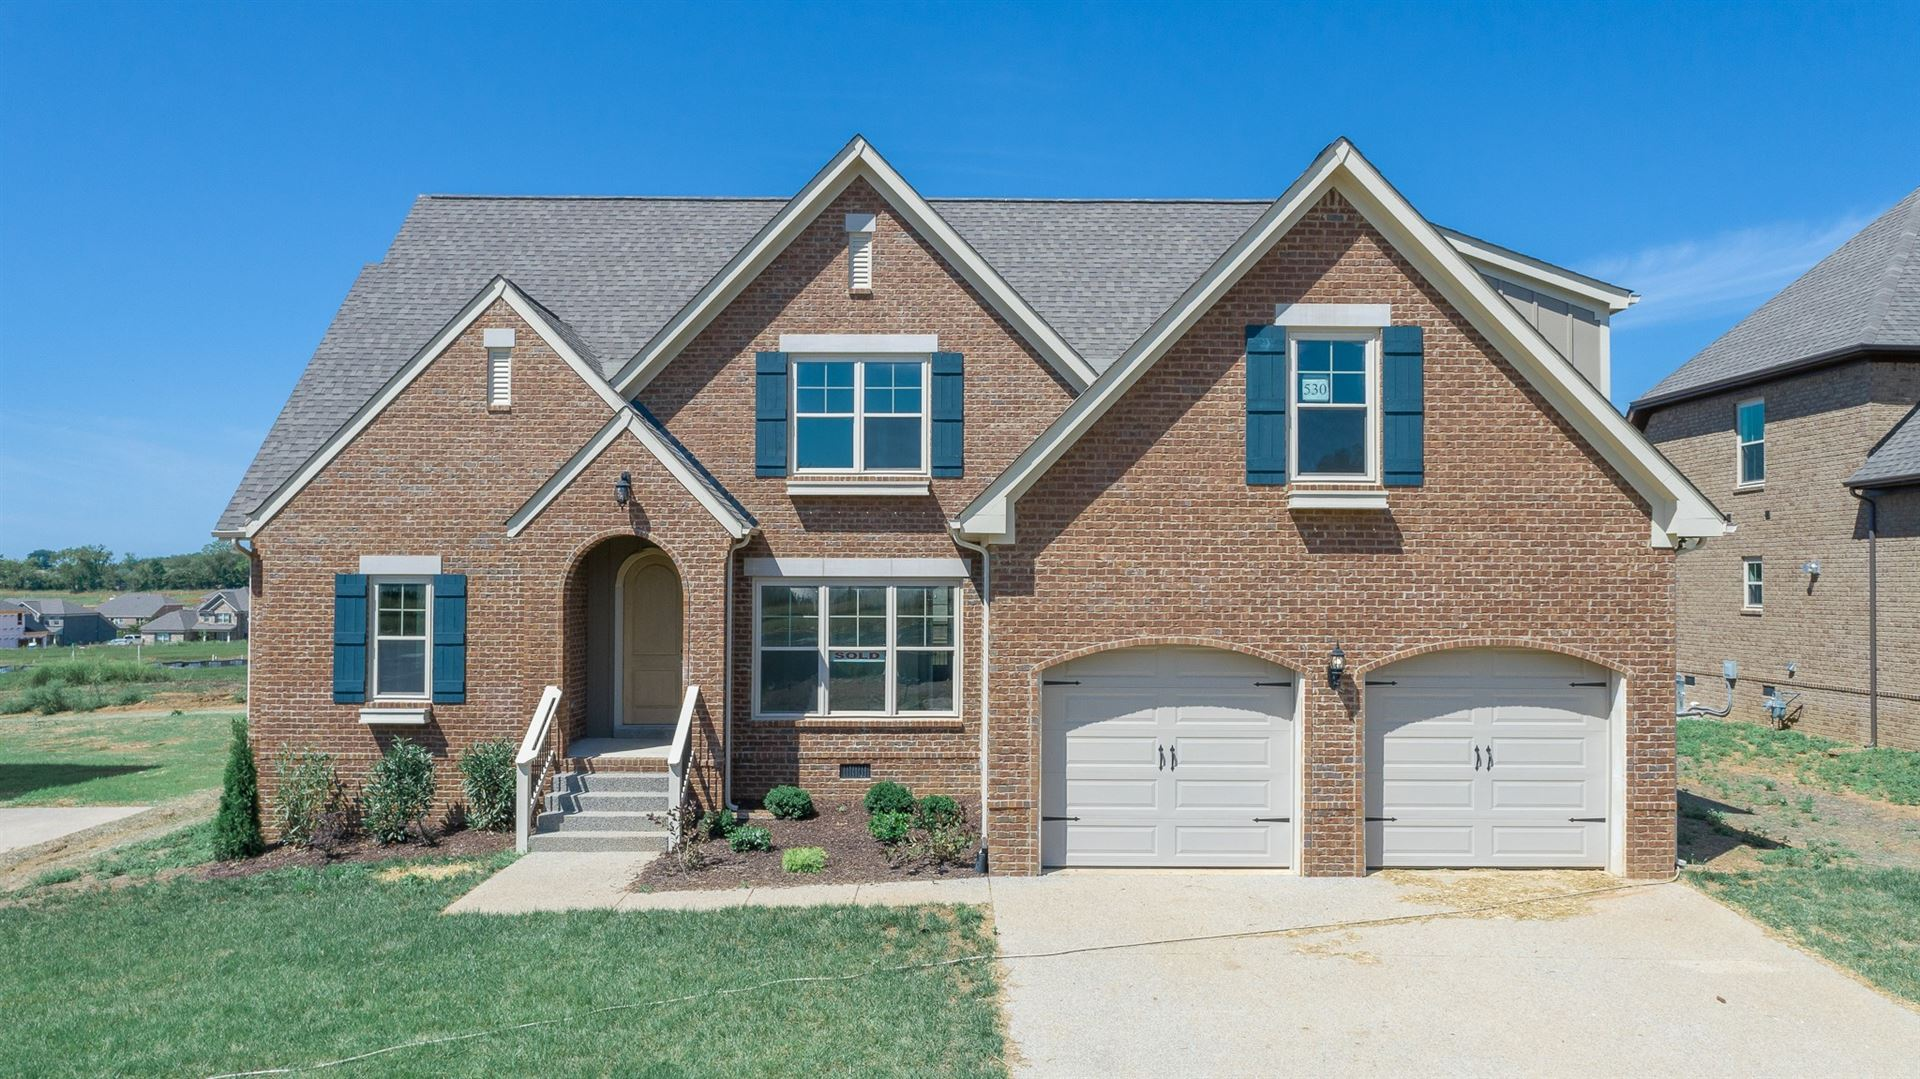 8030 Brightwater Way, Spring Hill, TN 37174 - MLS#: 2248362